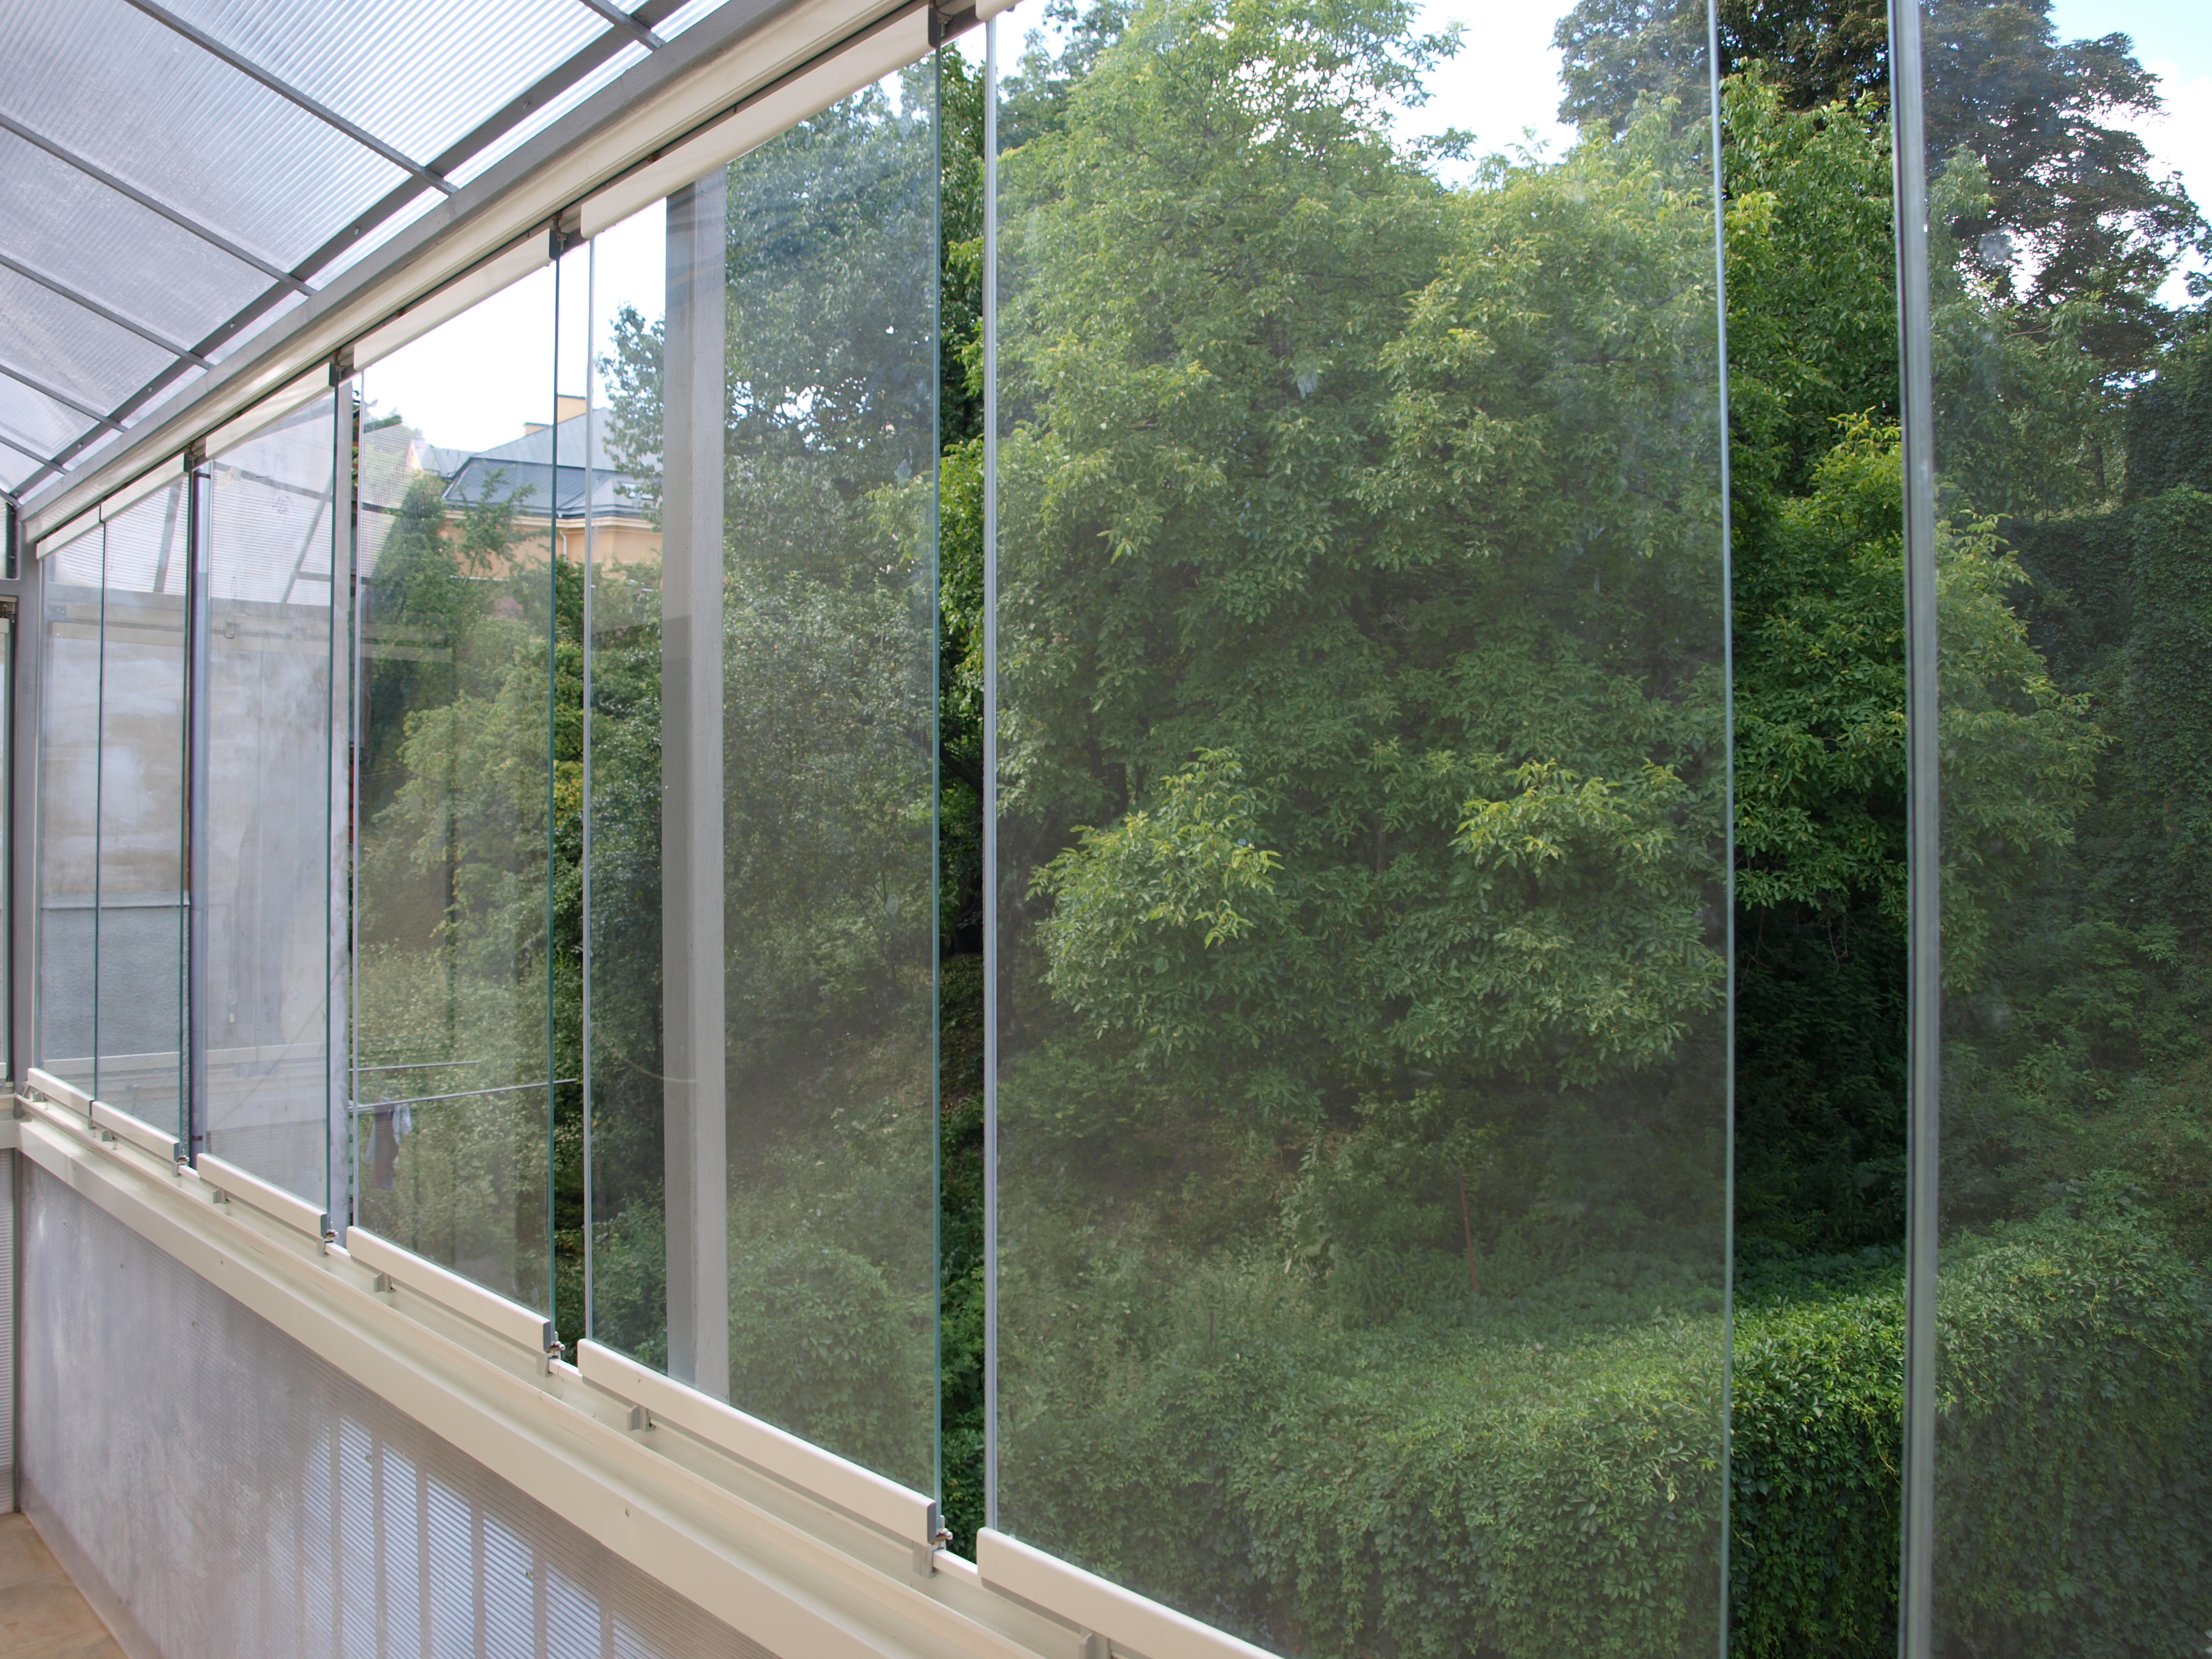 files/site-data/Frameless glazing/P7241618.JPG